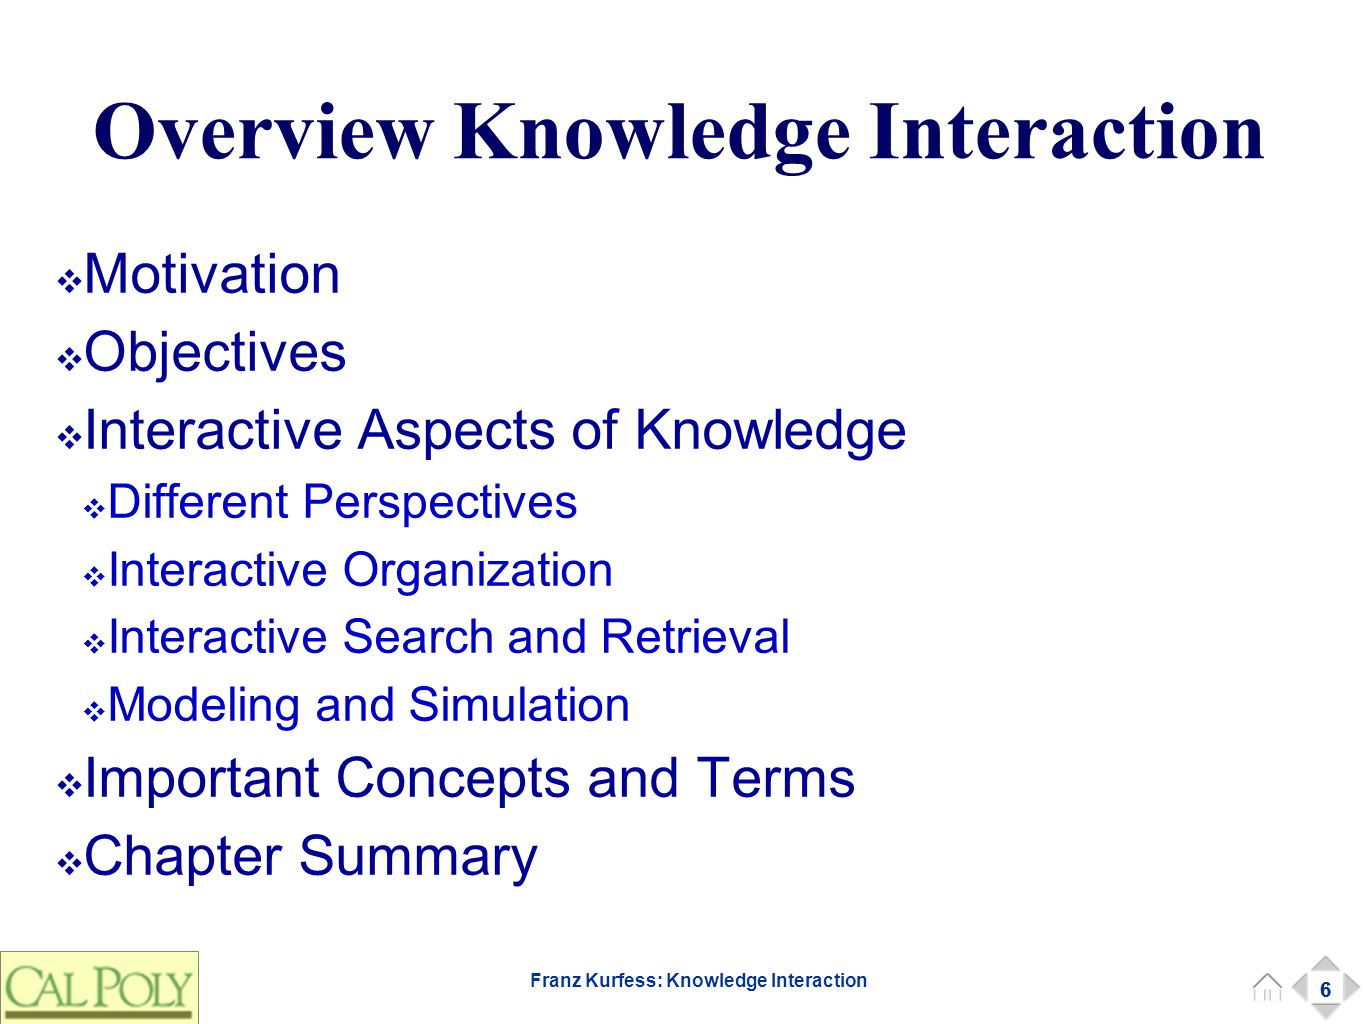 37 Franz Kurfess: Knowledge Interaction KP/KM Activity Outcomes 2007 ❖ Images with Metadata ❖ Extracting contact information from text ❖ Qualitative and quantitative knowledge about cheese making ❖ Visualization of astronomy data ❖ Surveillance/security KM ❖ Marketing ❖ Face recognition ❖ Visual marketing 37